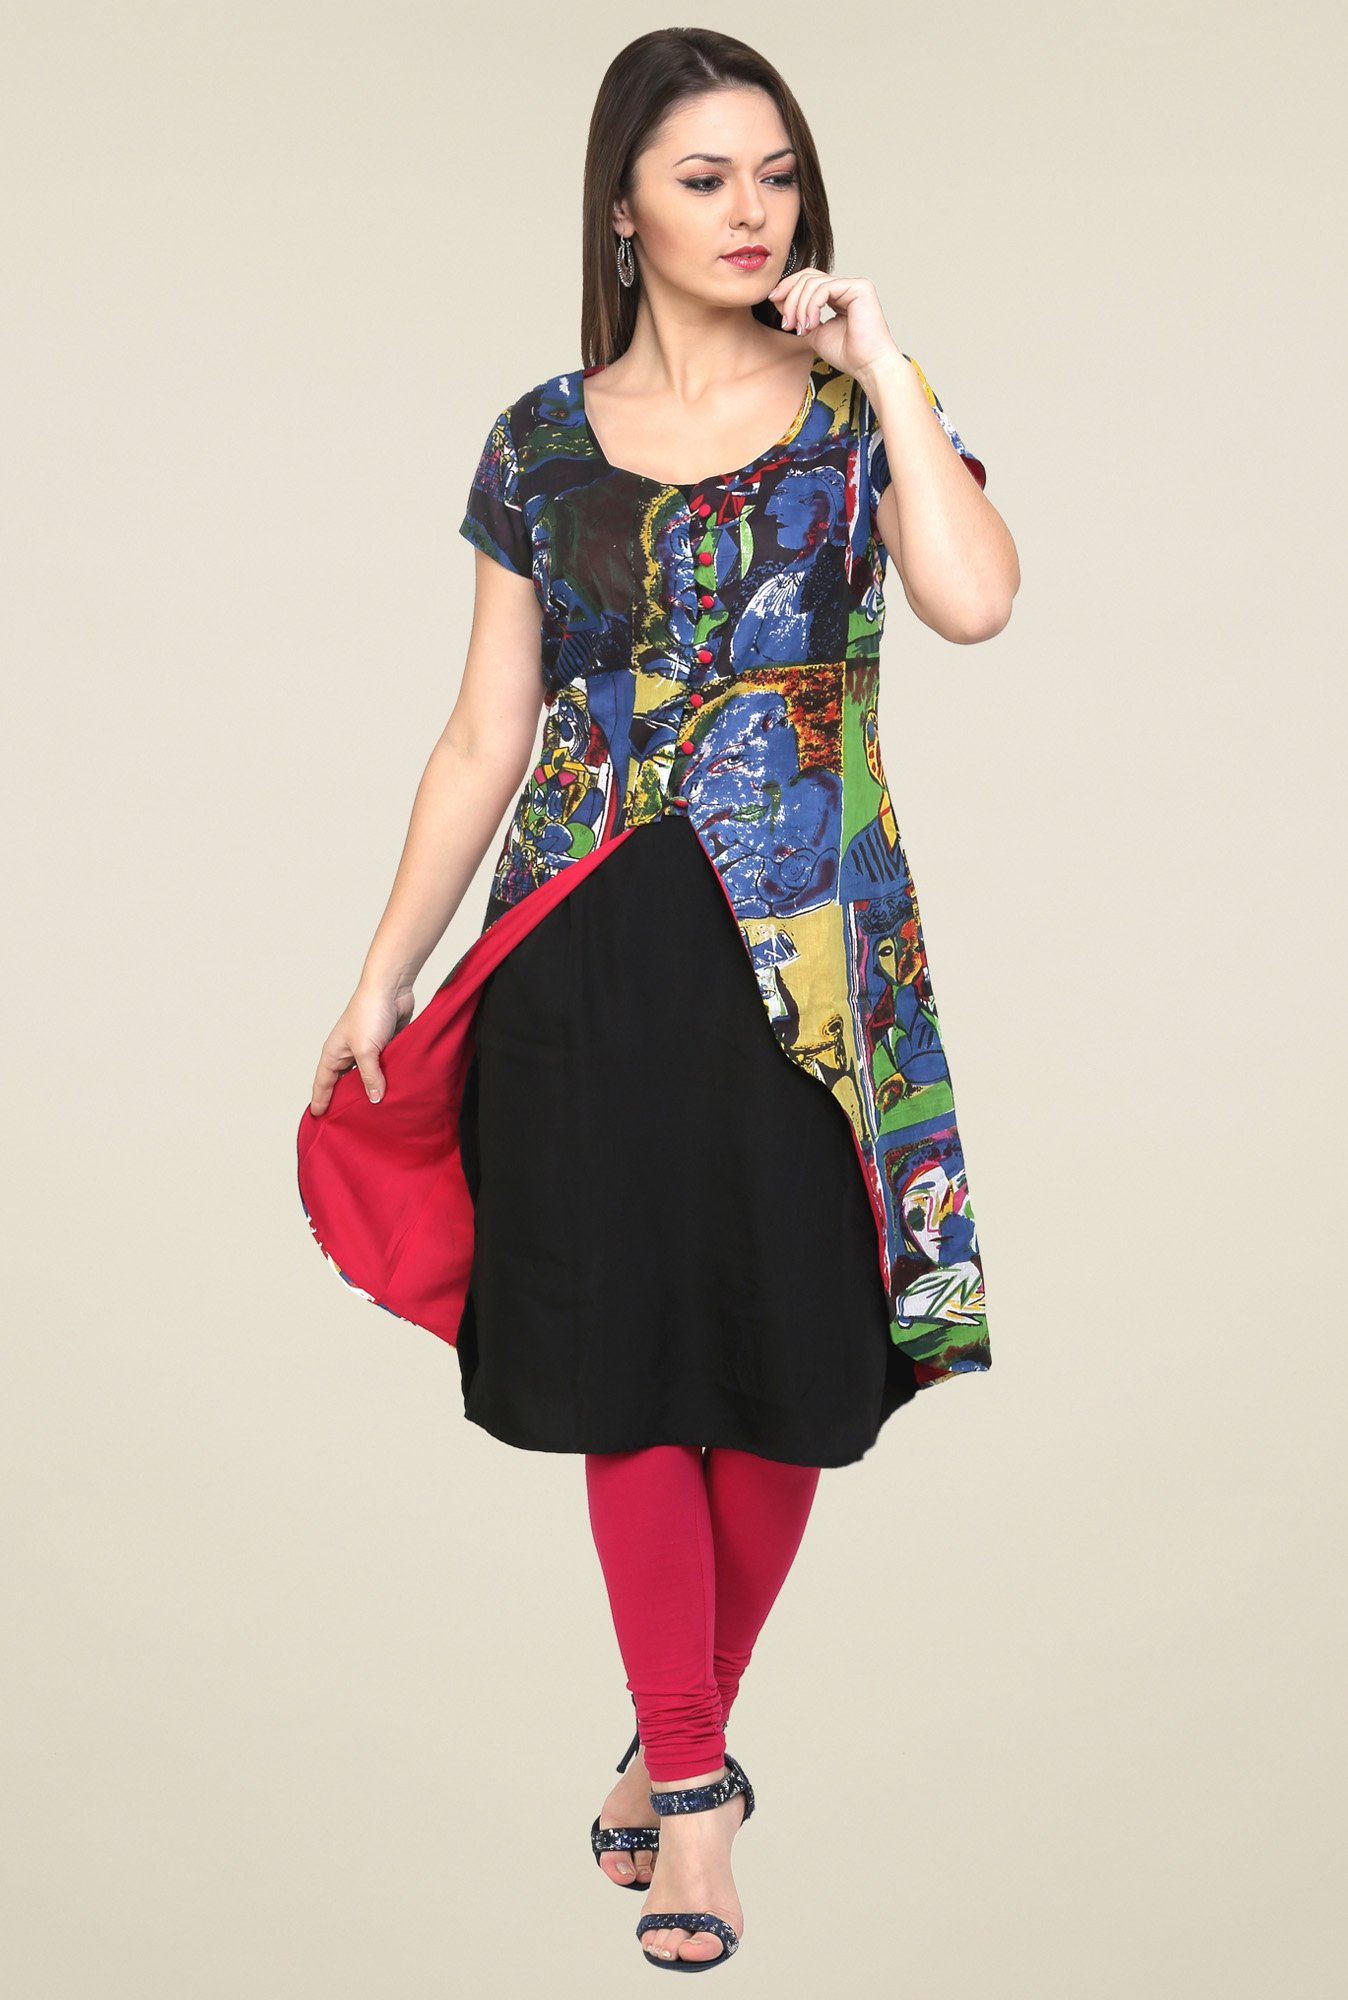 Pannkh Blue & Green Short Sleeves Kurti